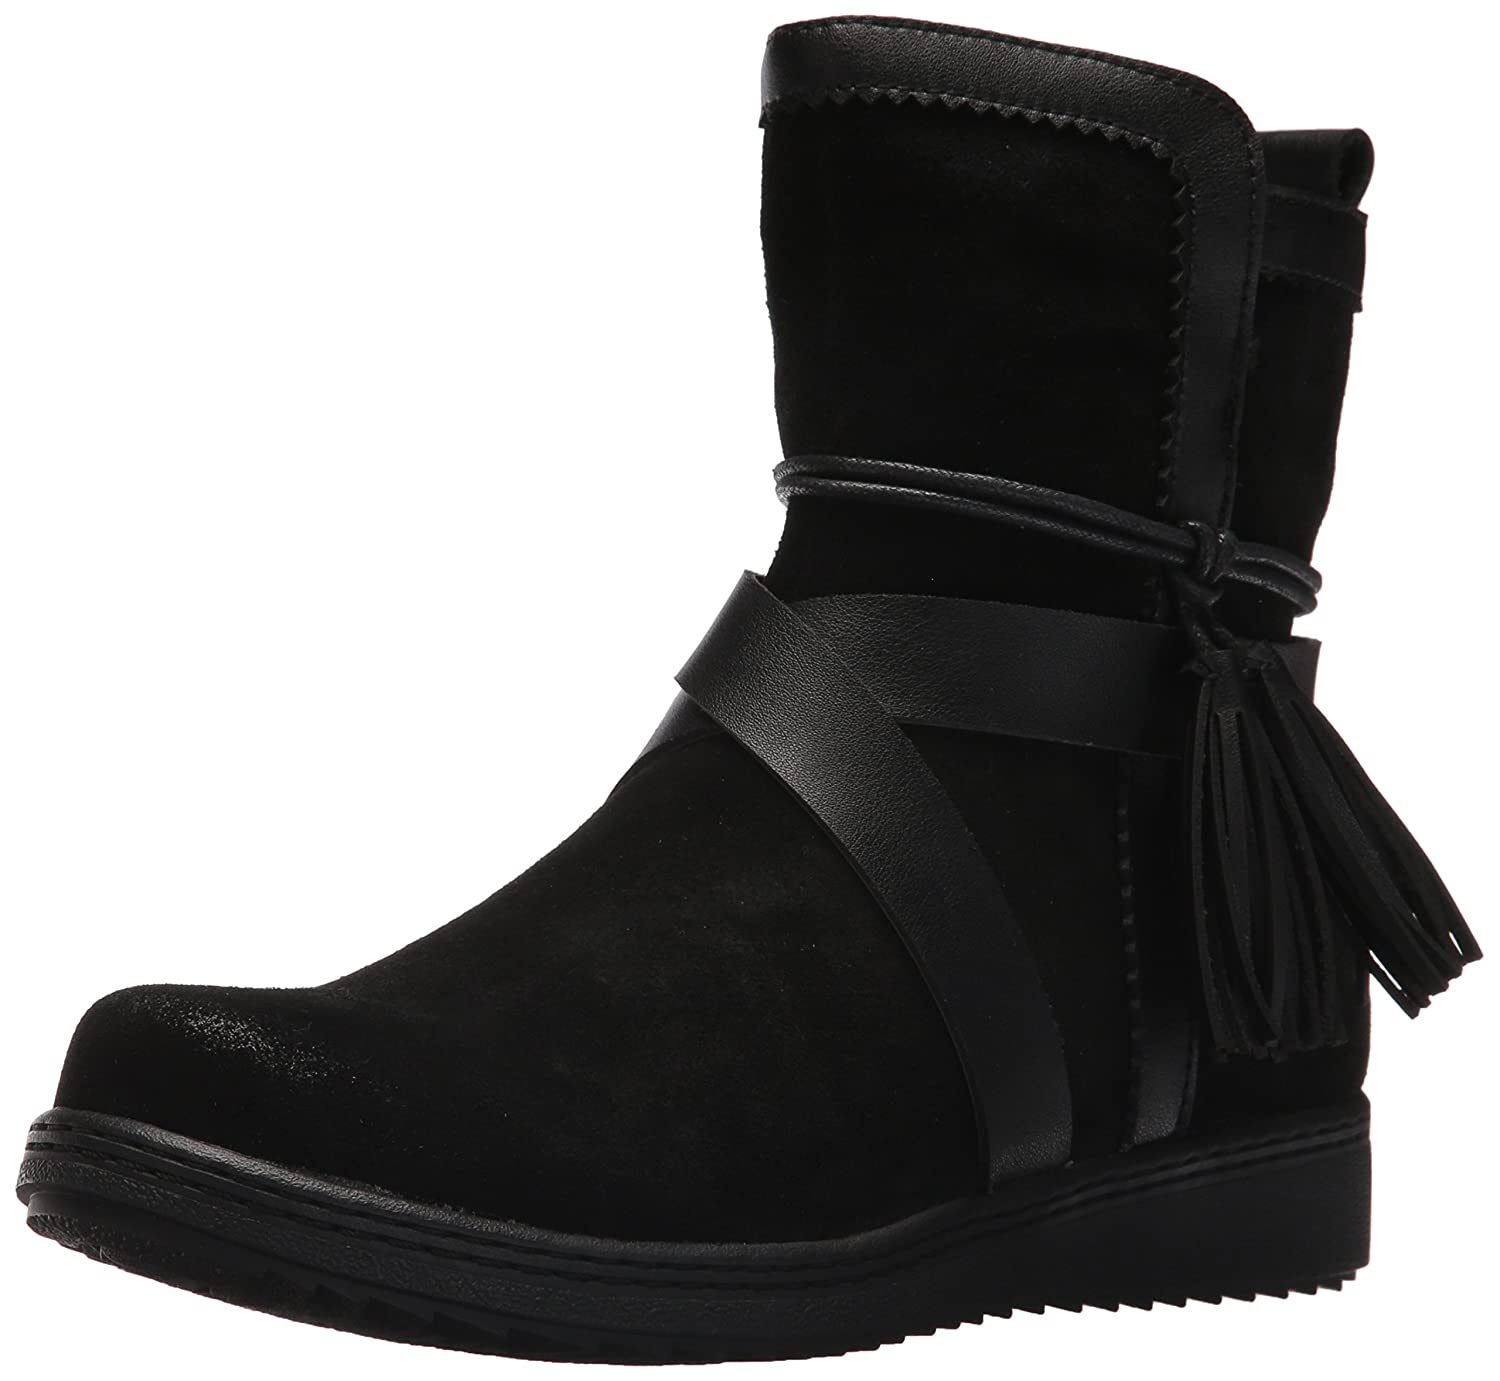 Spring Step Women's Patrina Boot B06XK5HD7J 39 M EU / 8.5 B(M) US|Black